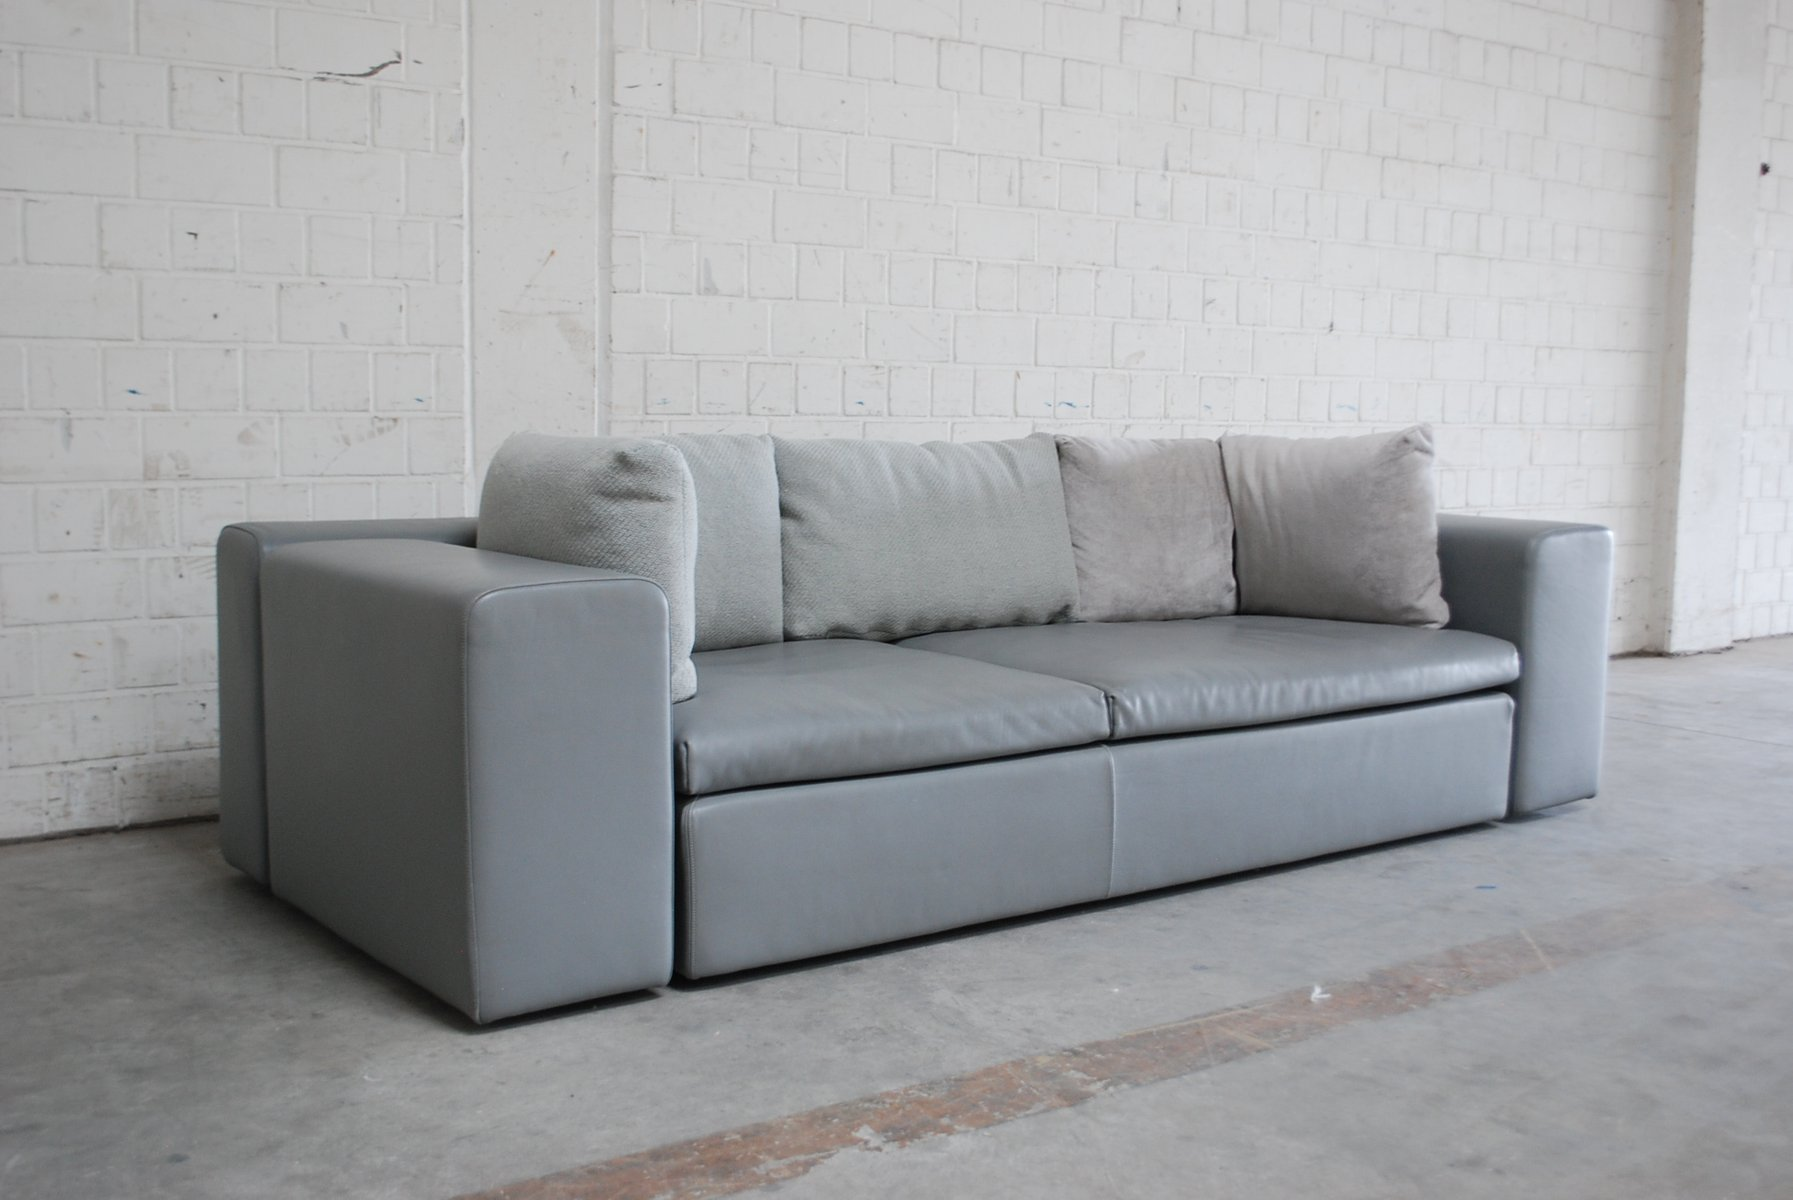 Vintage Leather Sofa by Patricia Urquiola for Moroso for sale at